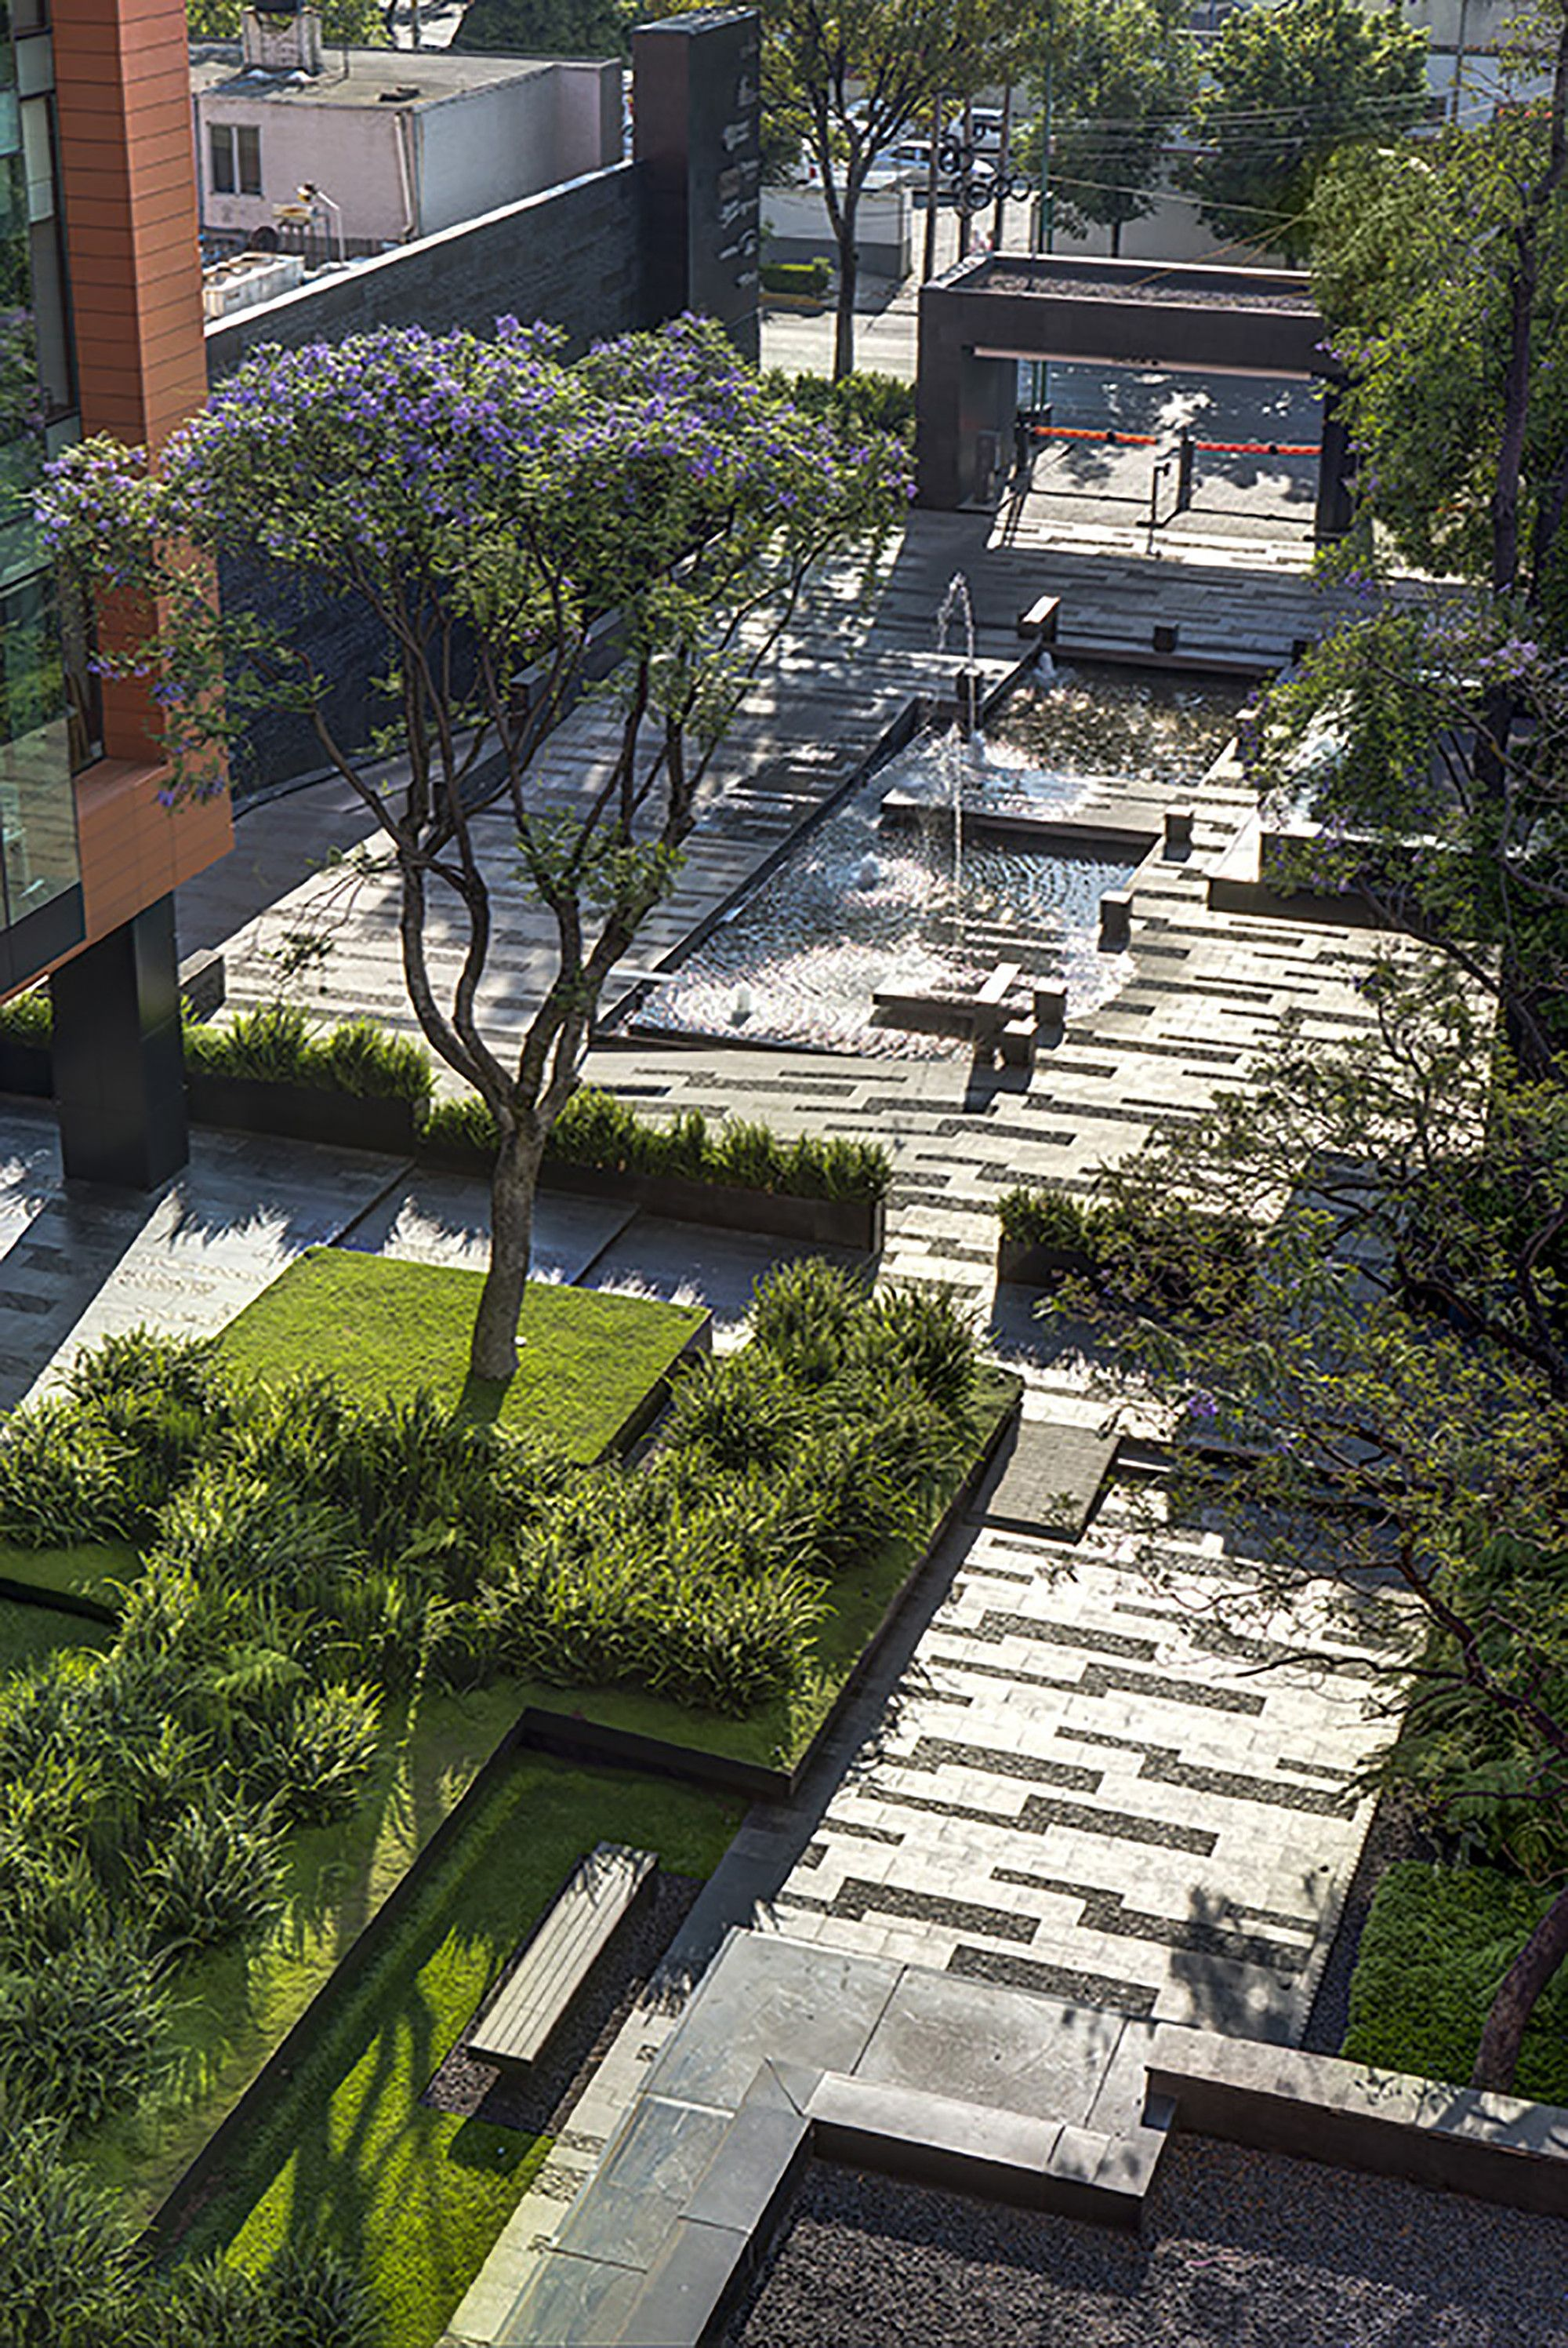 Galeria de paisagismo no campus corporativo coyoac n dlc for Urban garden design ideas